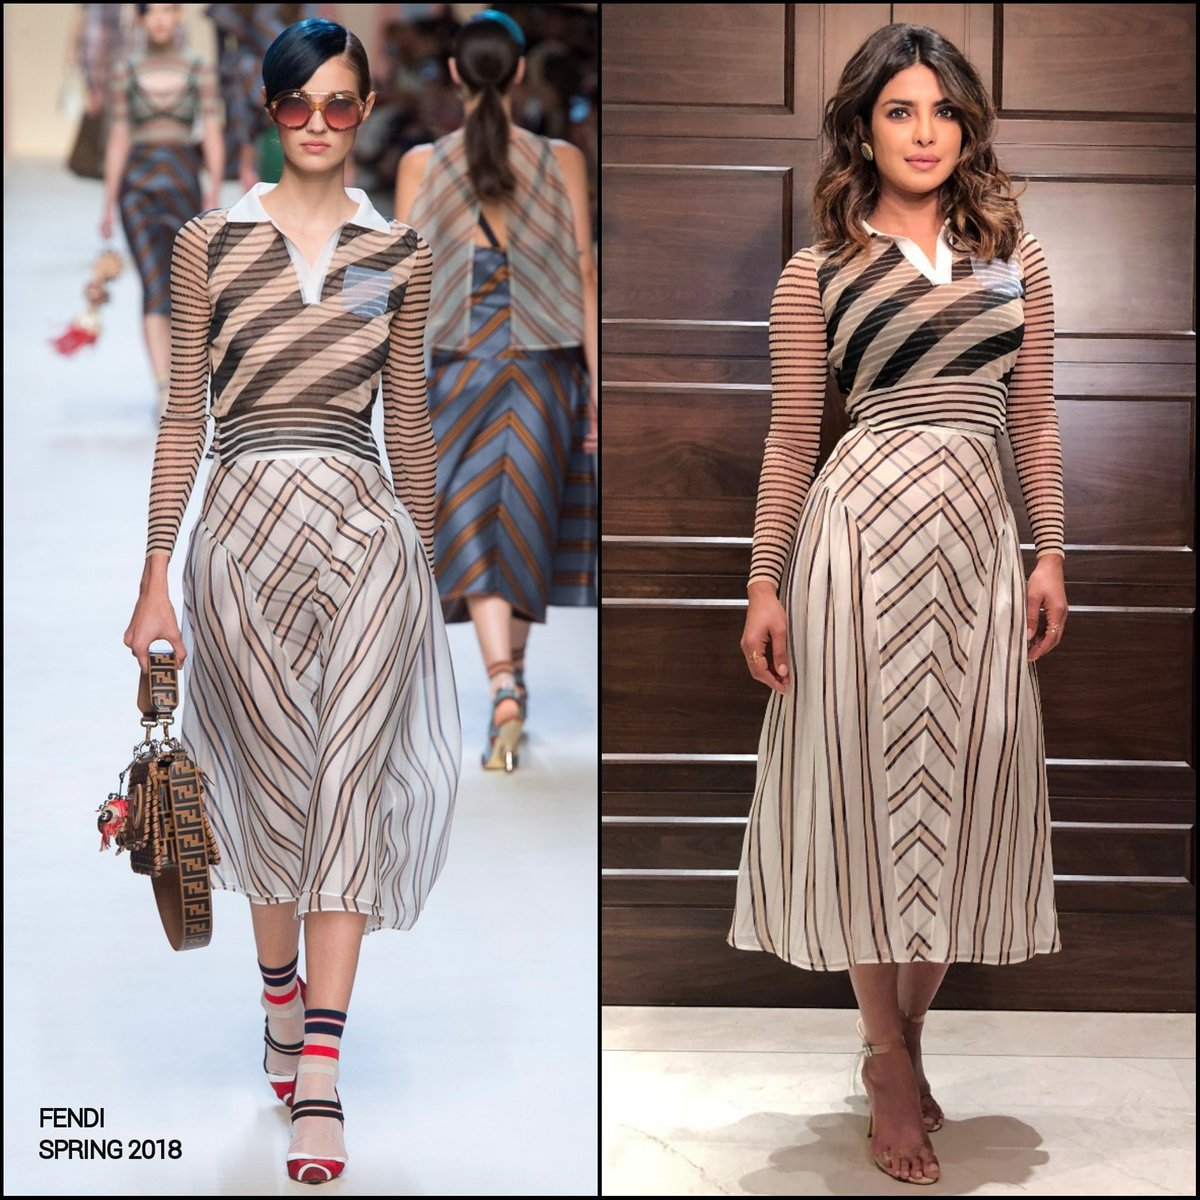 Priyanka Chopra in Fendi's Designer Dress – Lady India